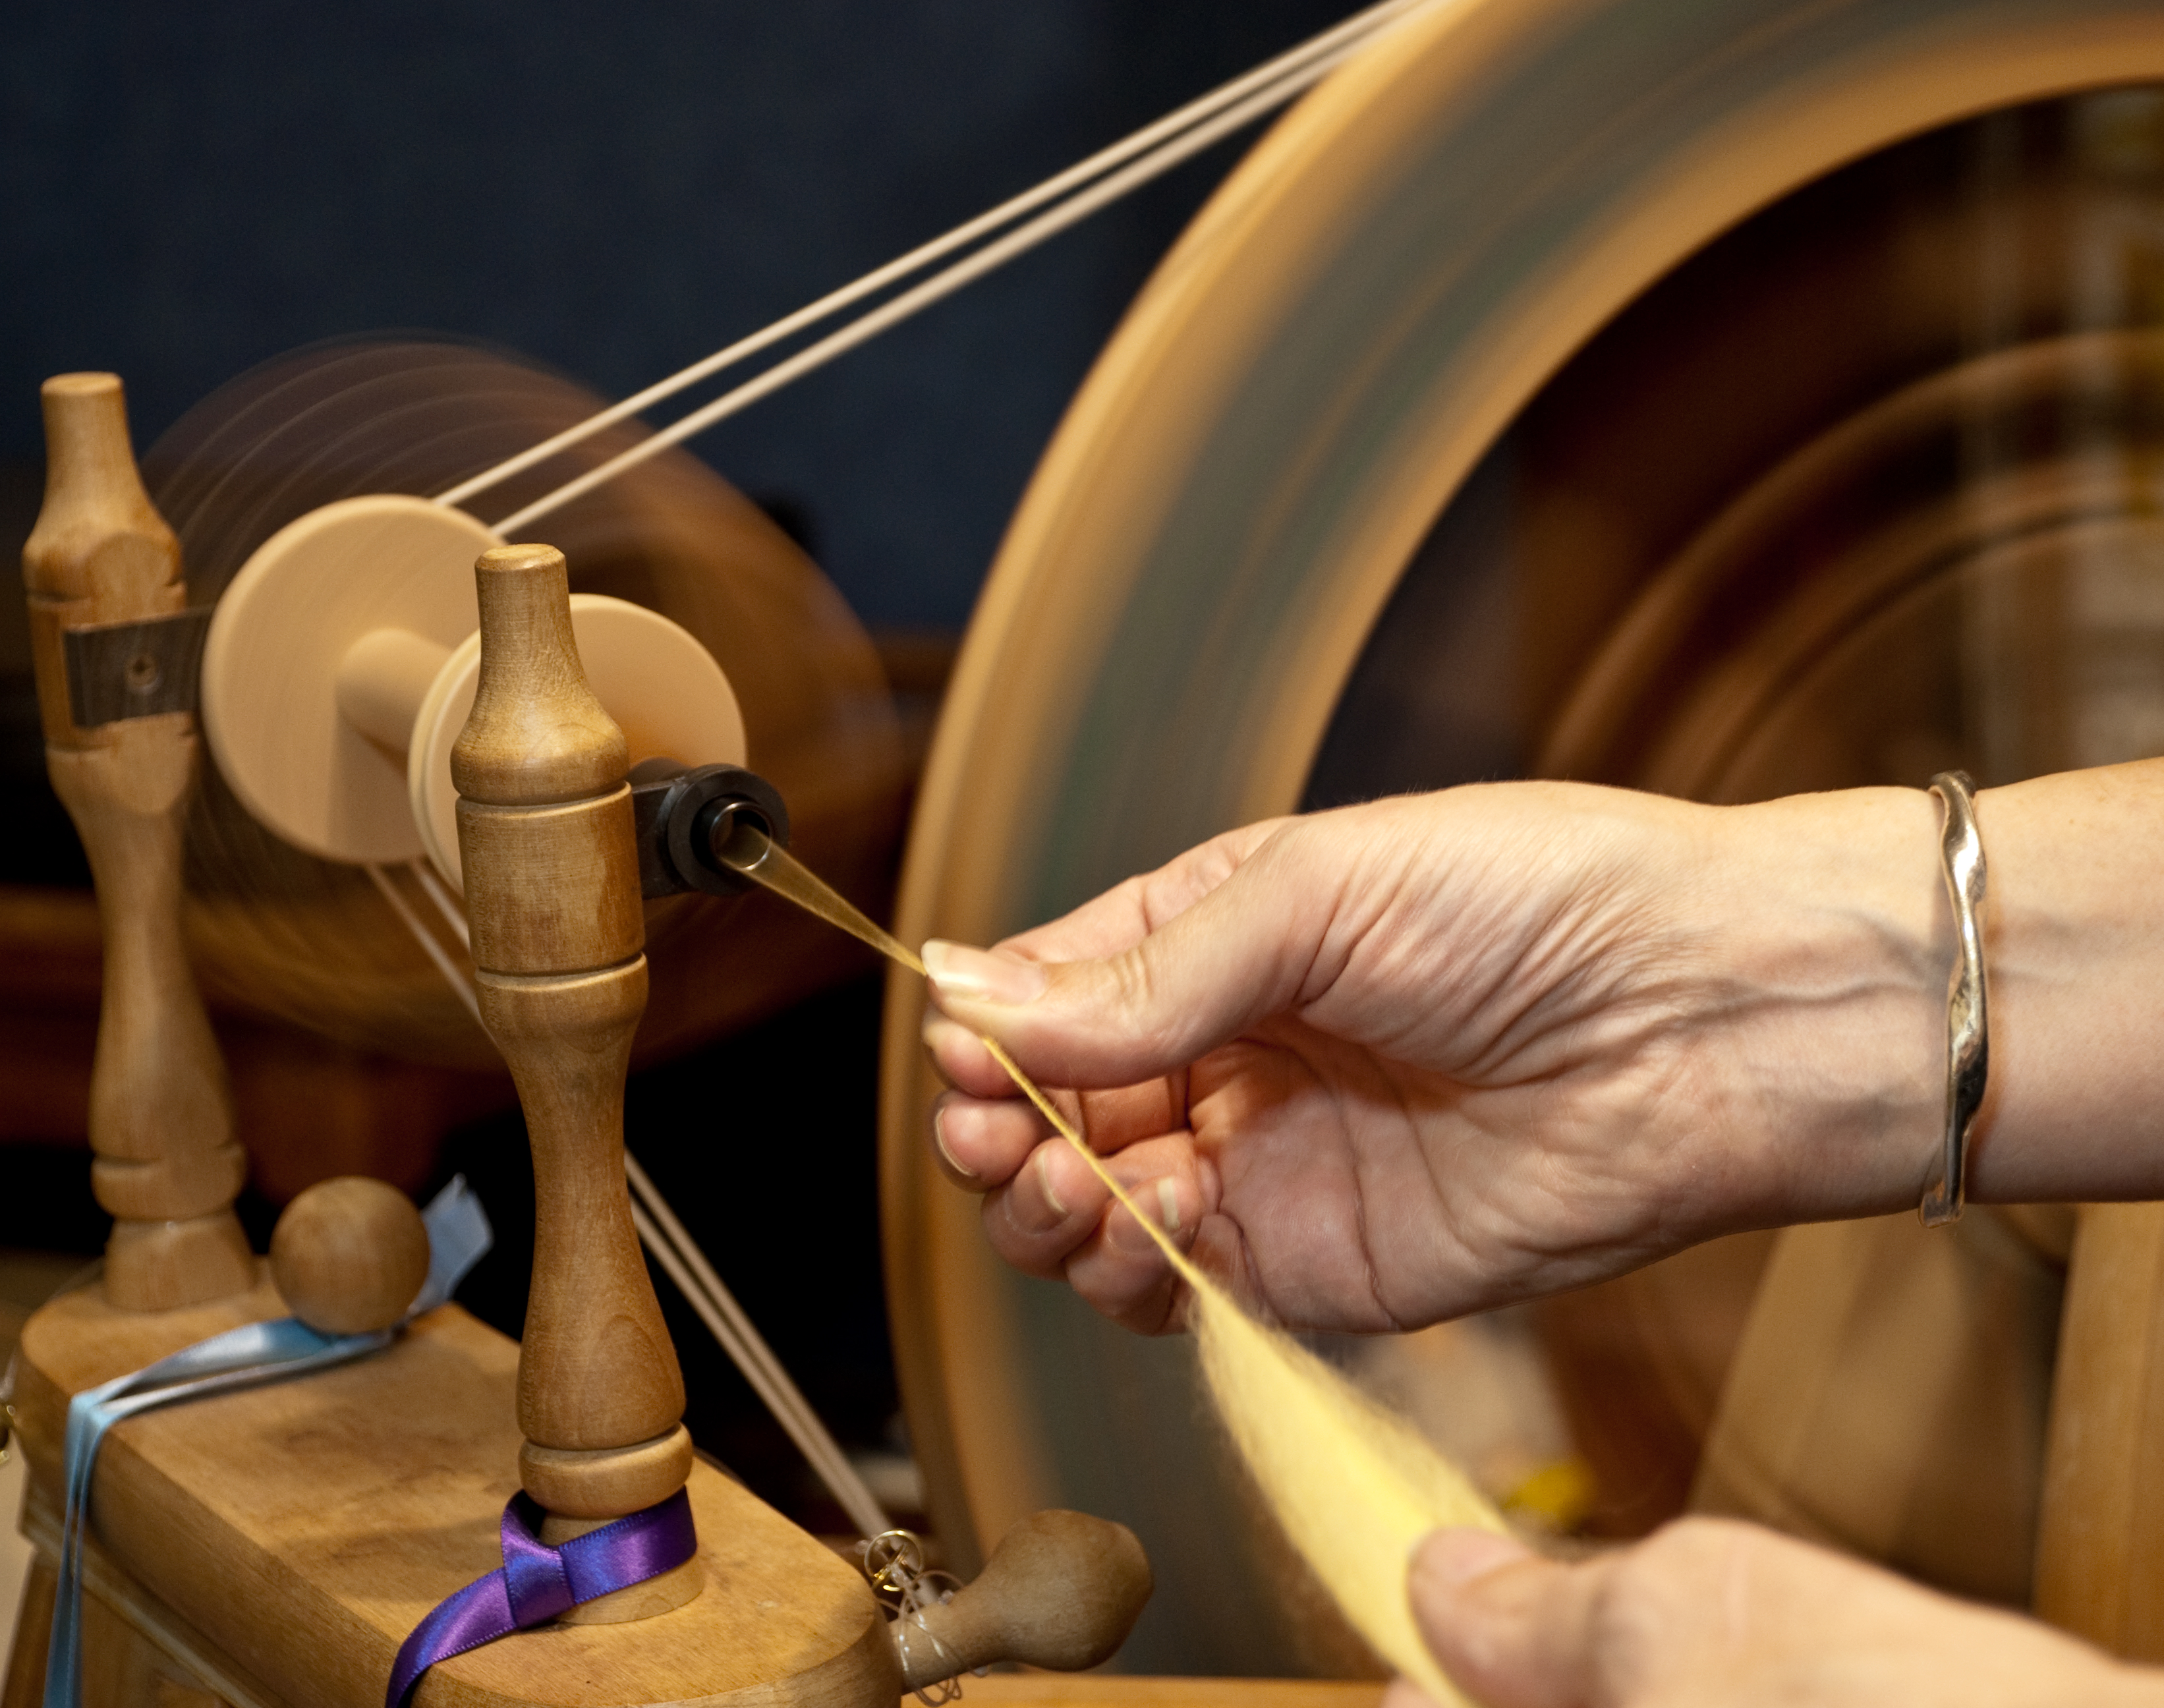 Canceled: Handspinning Group